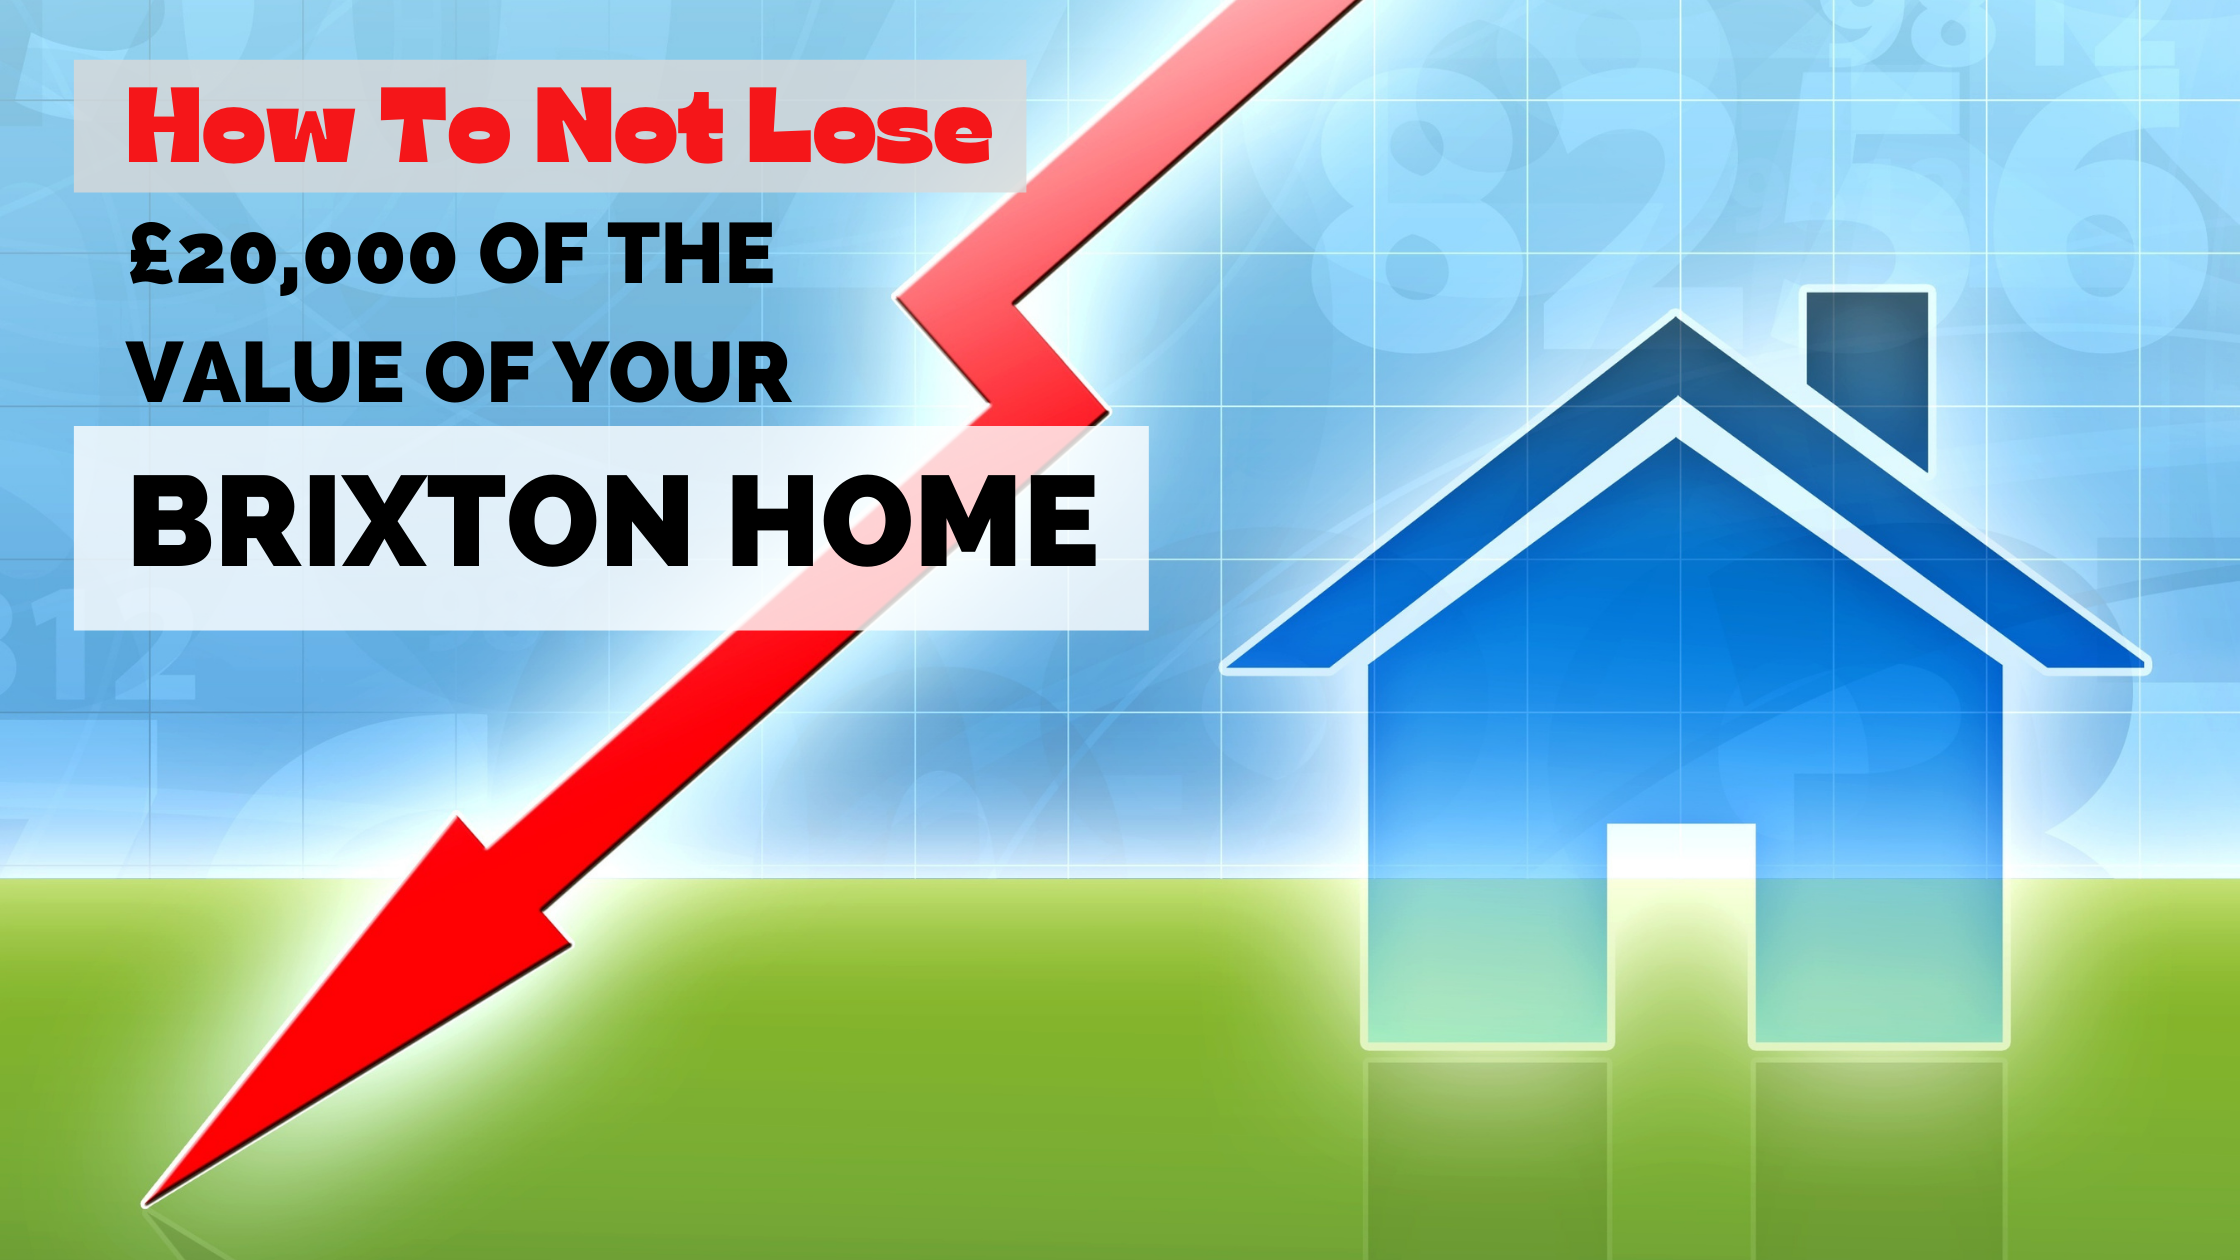 How To Not Lose £20,000 Of The Value Of Your Brixton Home